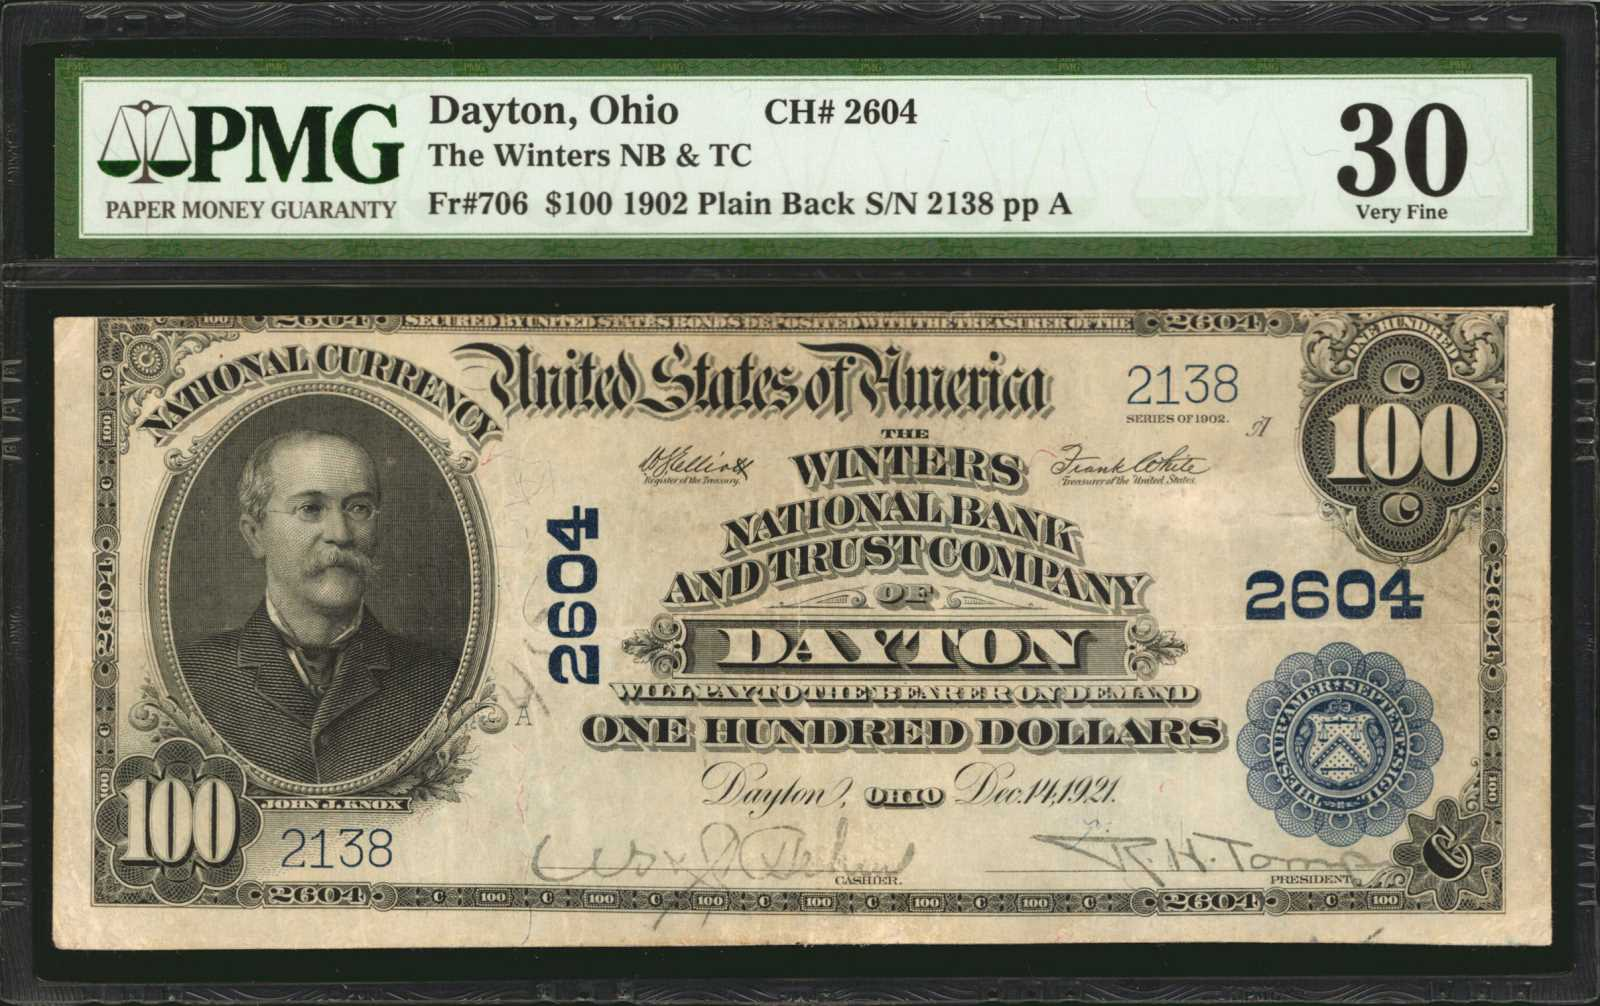 sample image for 1902 3rd Charter Period $100  Plain Back 3rd Issue (Fr.# 706)